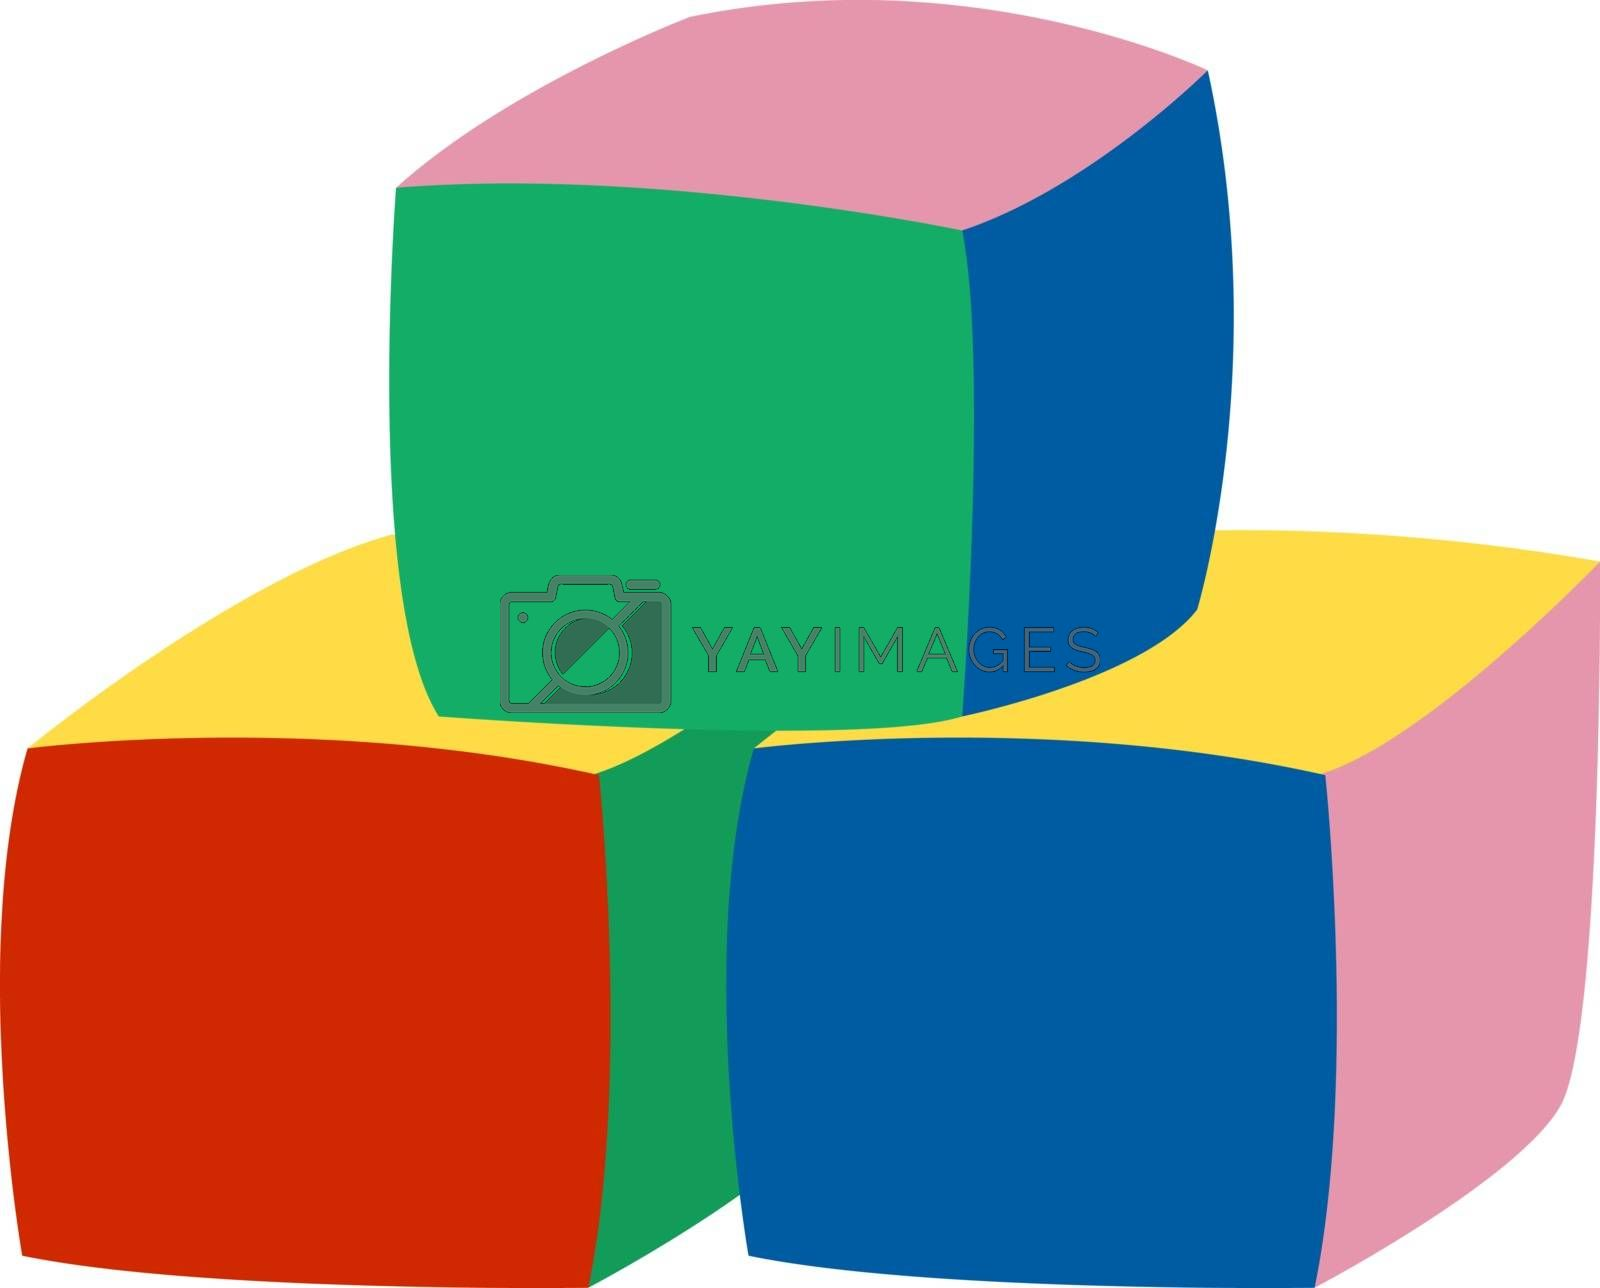 Cubes toy, illustration, vector on white background.